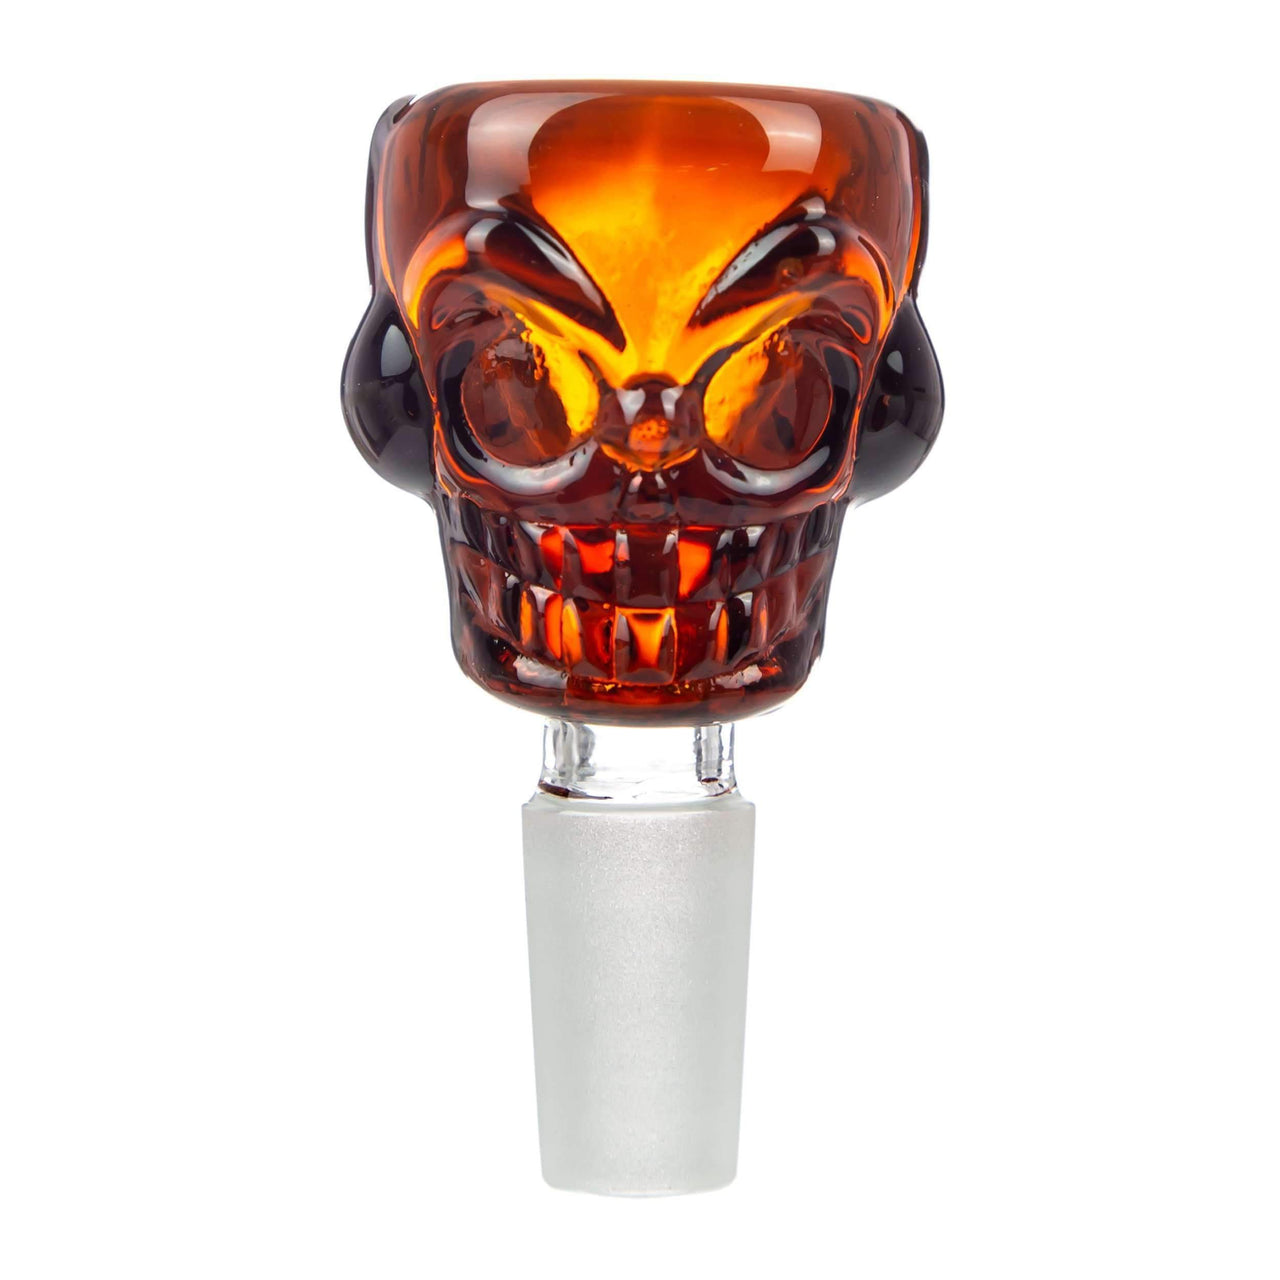 Skull Themed Replacement Glass Bowl - Amber | The710Source.com